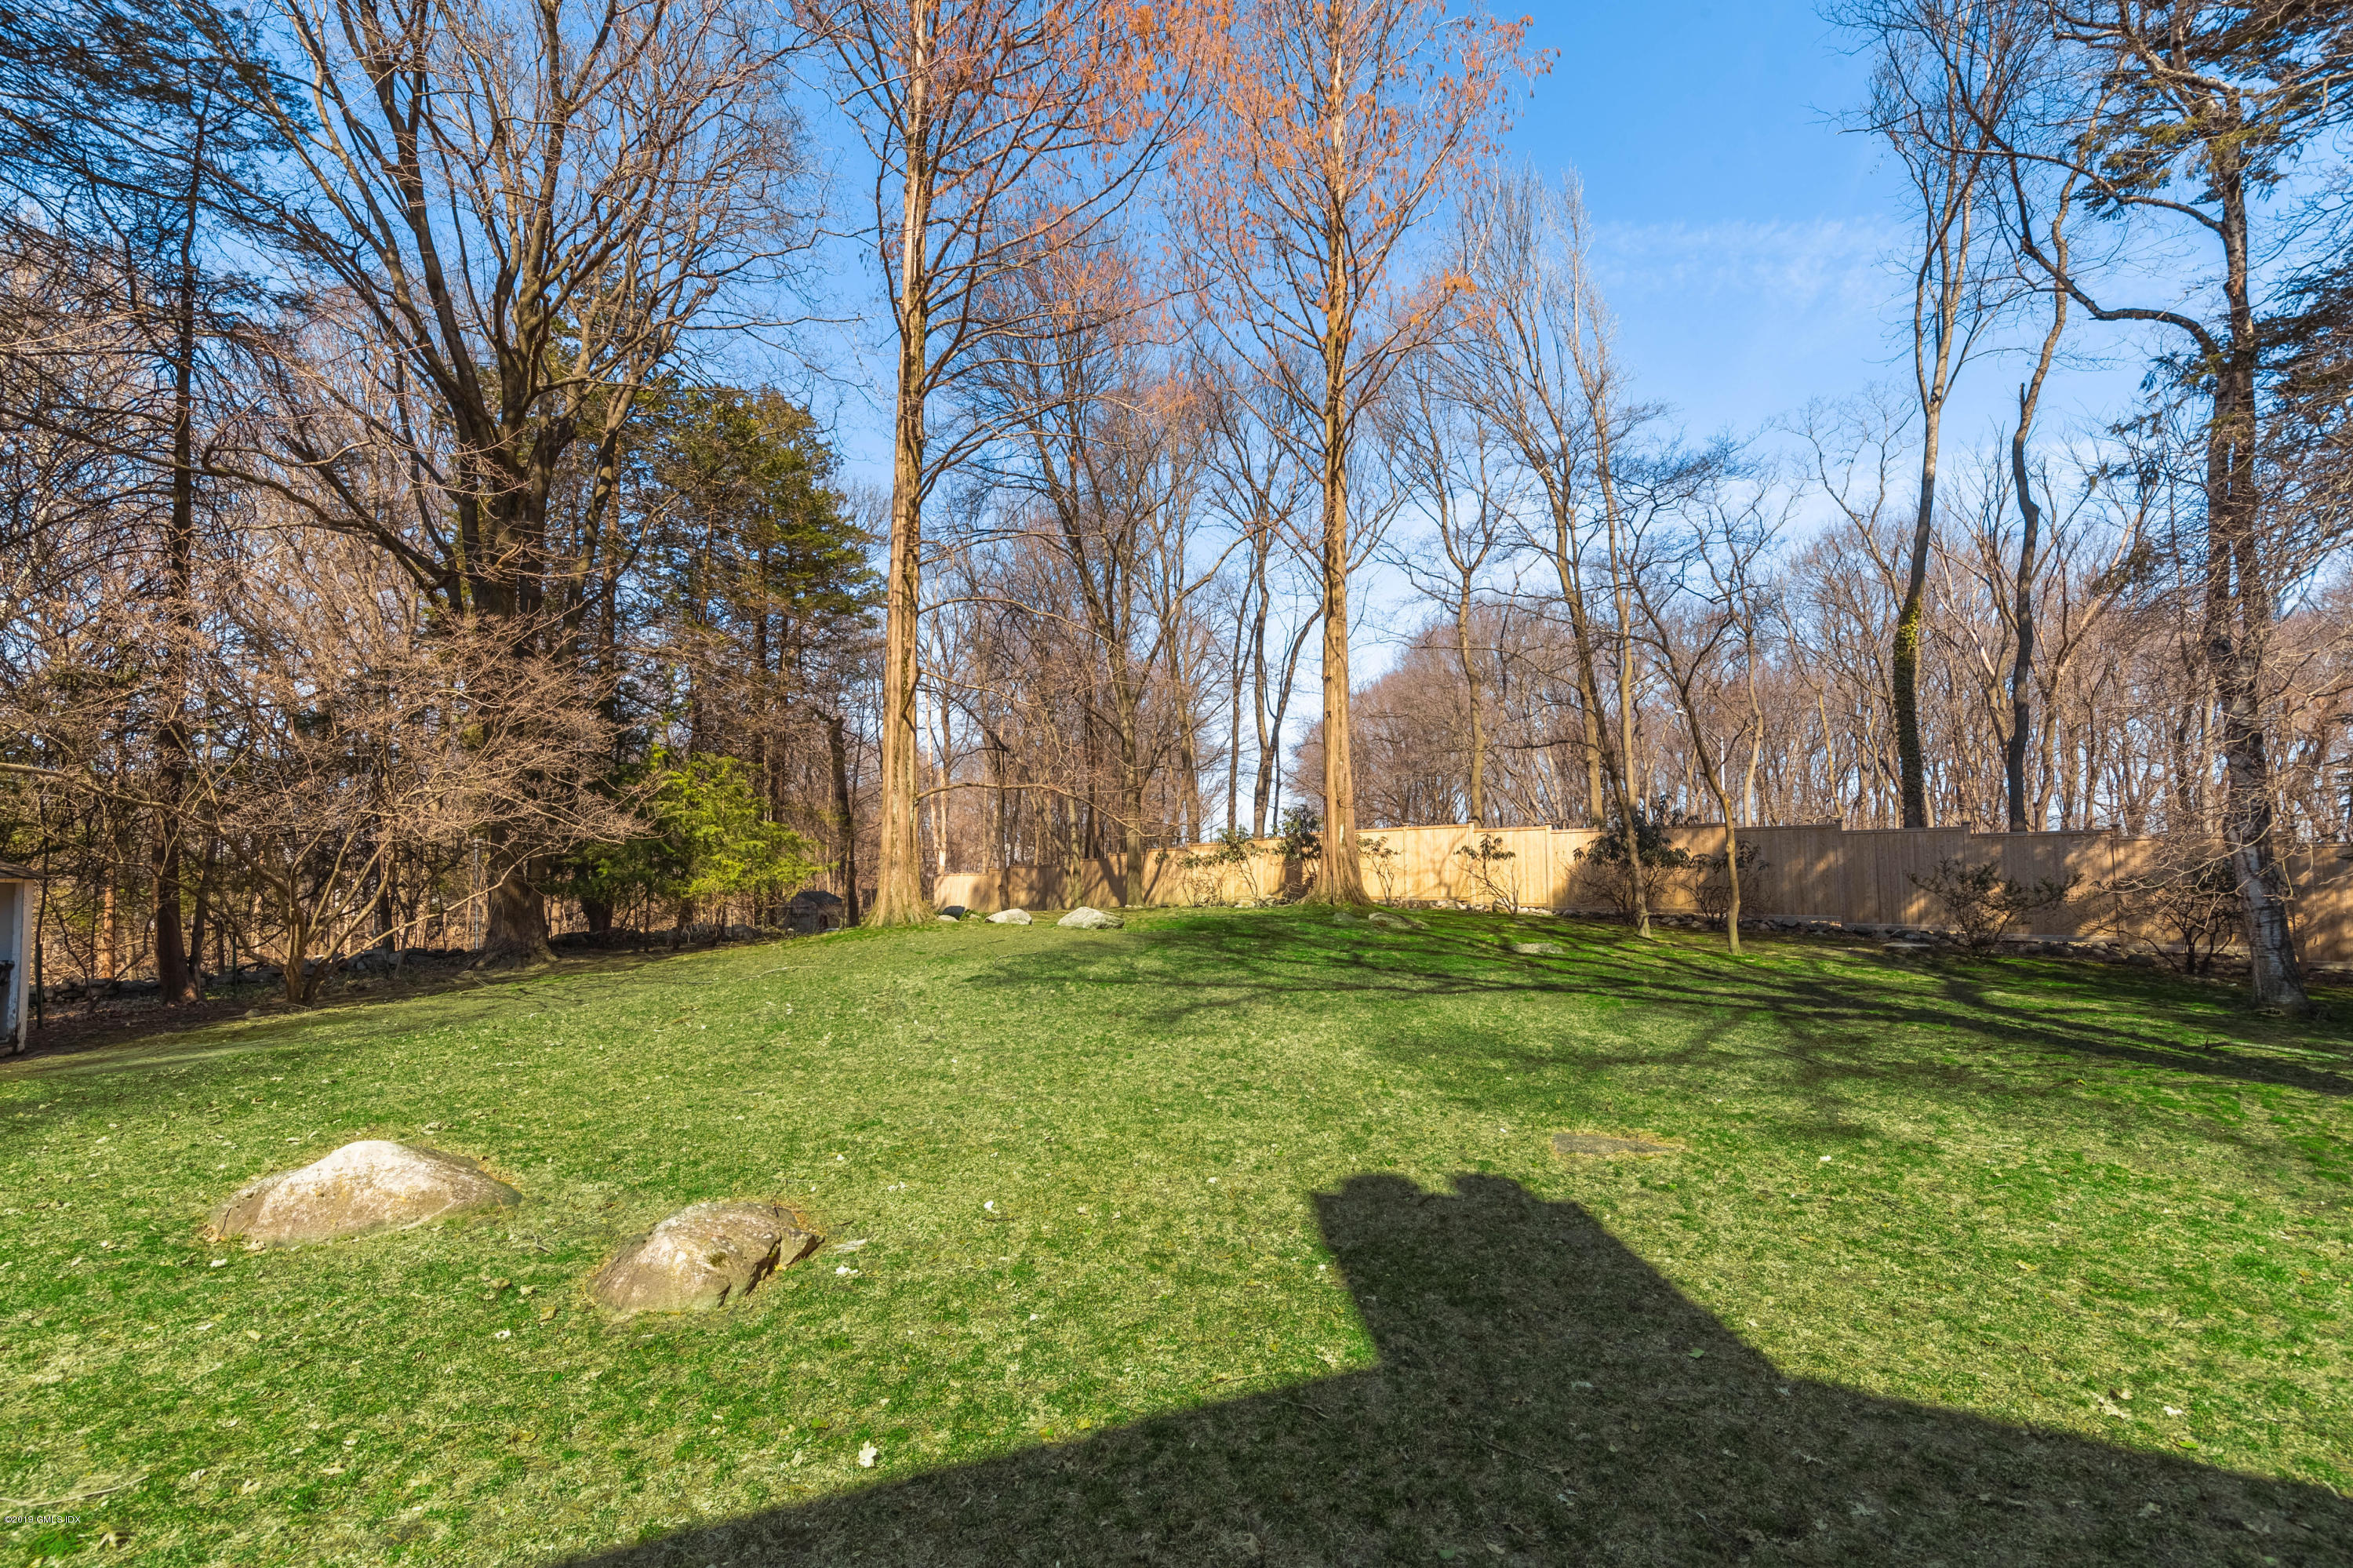 22 Crescent Road,Riverside,Connecticut 06878,4 Bedrooms Bedrooms,2 BathroomsBathrooms,Single family,Crescent,106217